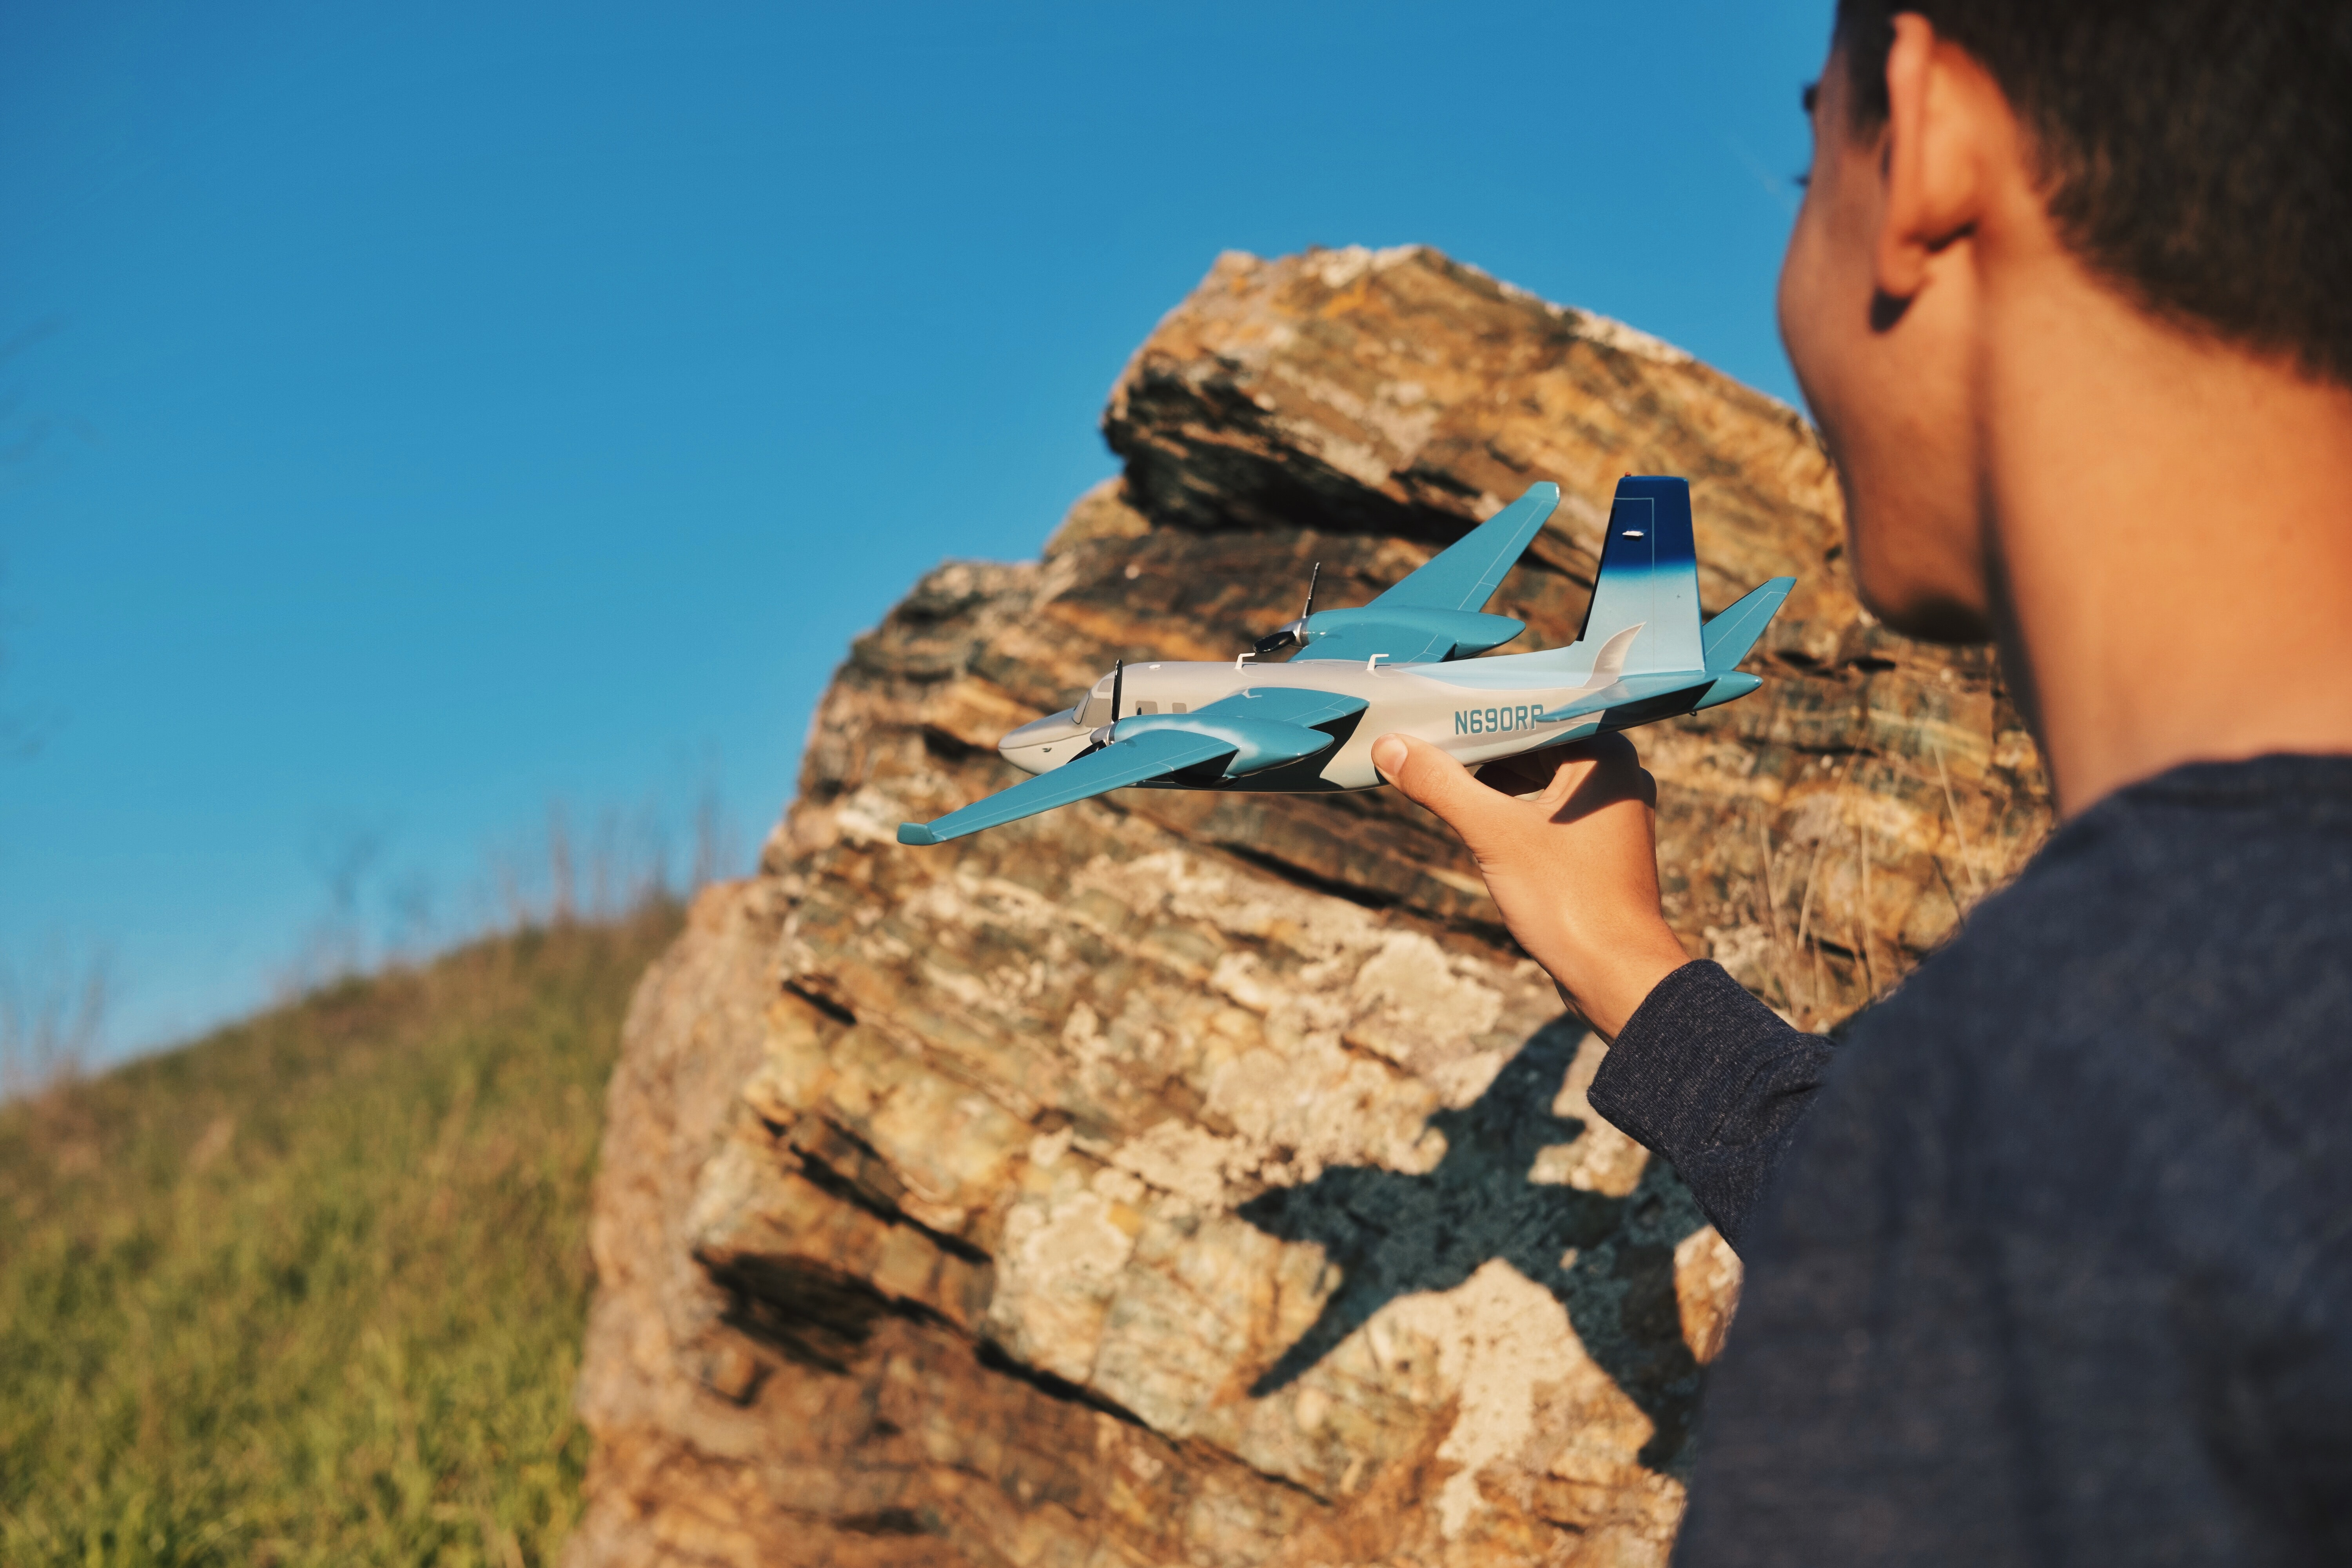 A boy holds a model airplane, casting a shadow on a rock before a blue sky